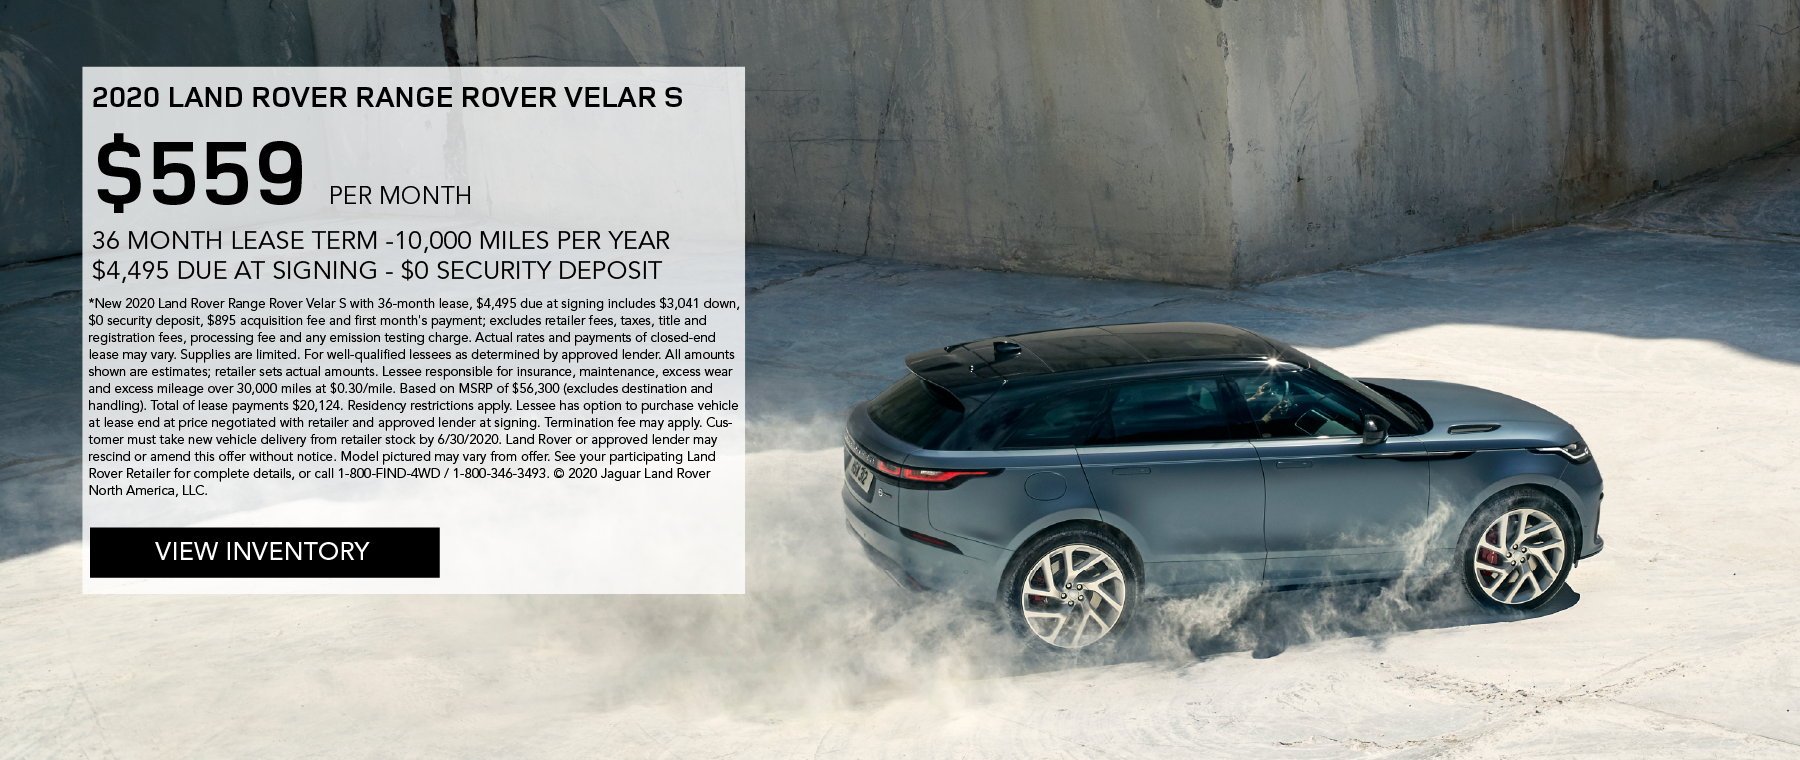 2020 RANGE ROVER VELAR S. $559 PER MONTH. 36 MONTH LEASE TERM. $4,495 CASH DUE AT SIGNING. $0 SECURITY DEPOSIT. 10,000 MILES PER YEAR. EXCLUDES RETAILER FEES, TAXES, TITLE AND REGISTRATION FEES, PROCESSING FEE AND ANY EMISSION TESTING CHARGE. OFFER ENDS 6/30/2020. VIEW INVENTORY. BLUE RANGE ROVER VELAR DRIVING DOWN DIRT ROAD.